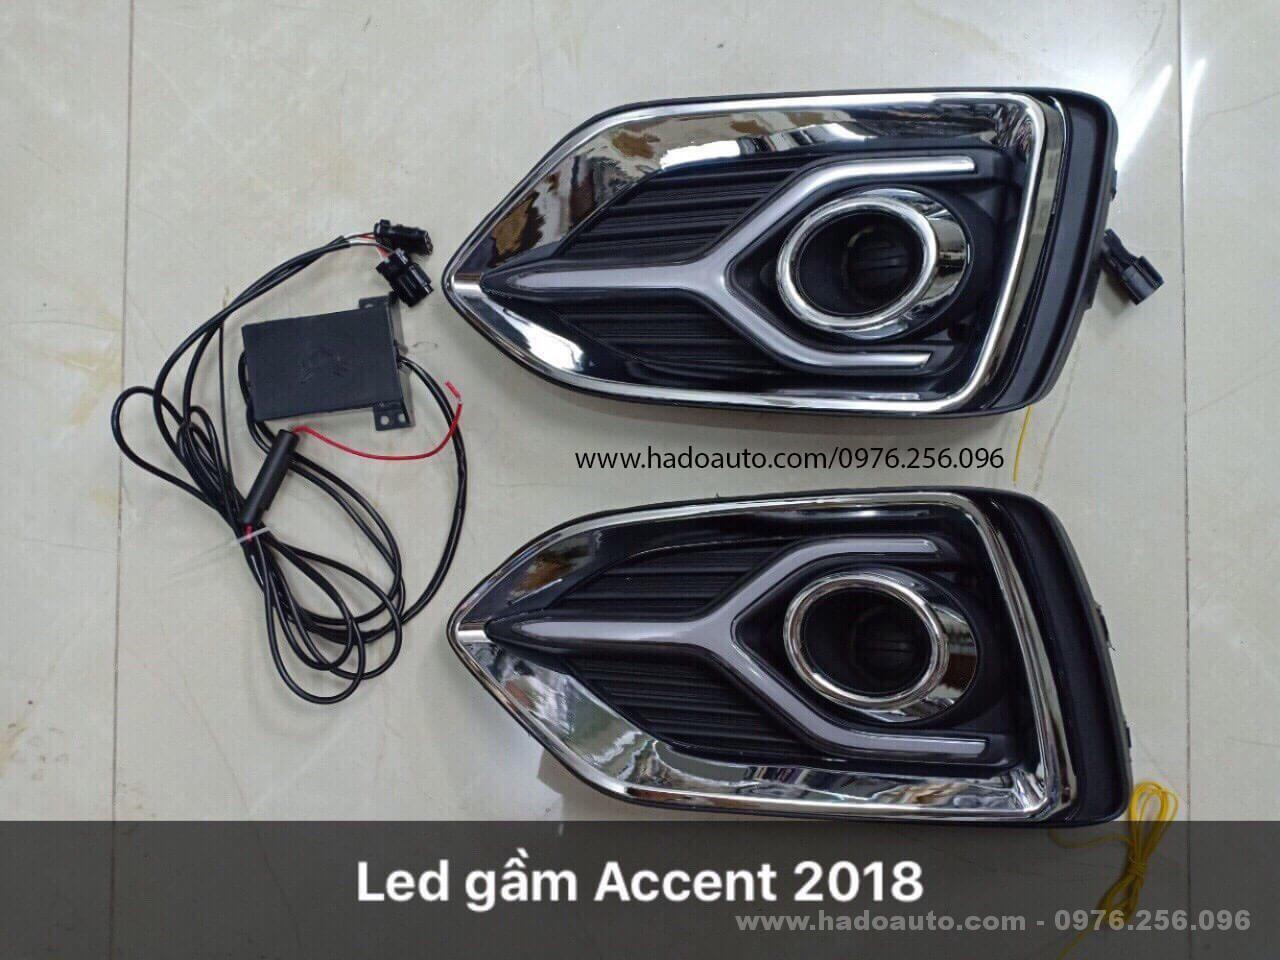 den led gam hyundai accent 2018